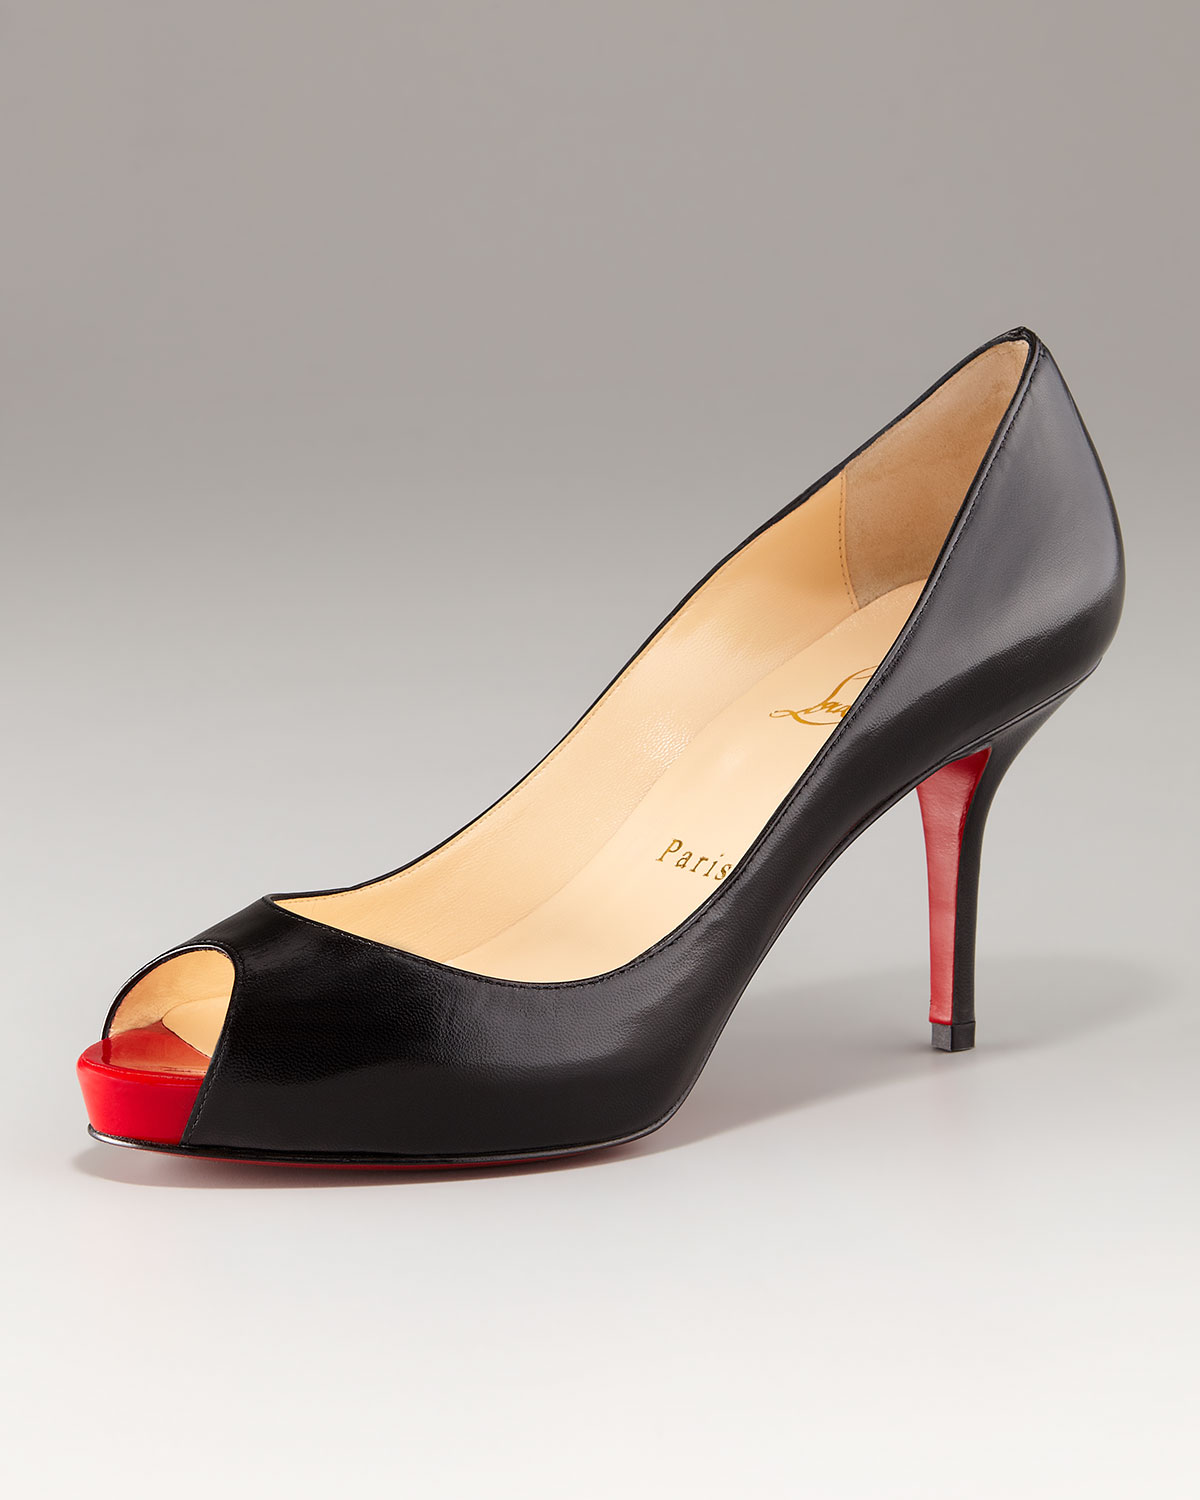 Lyst - Christian louboutin Mater Claude Open-toe Mid-heel Pump in ...